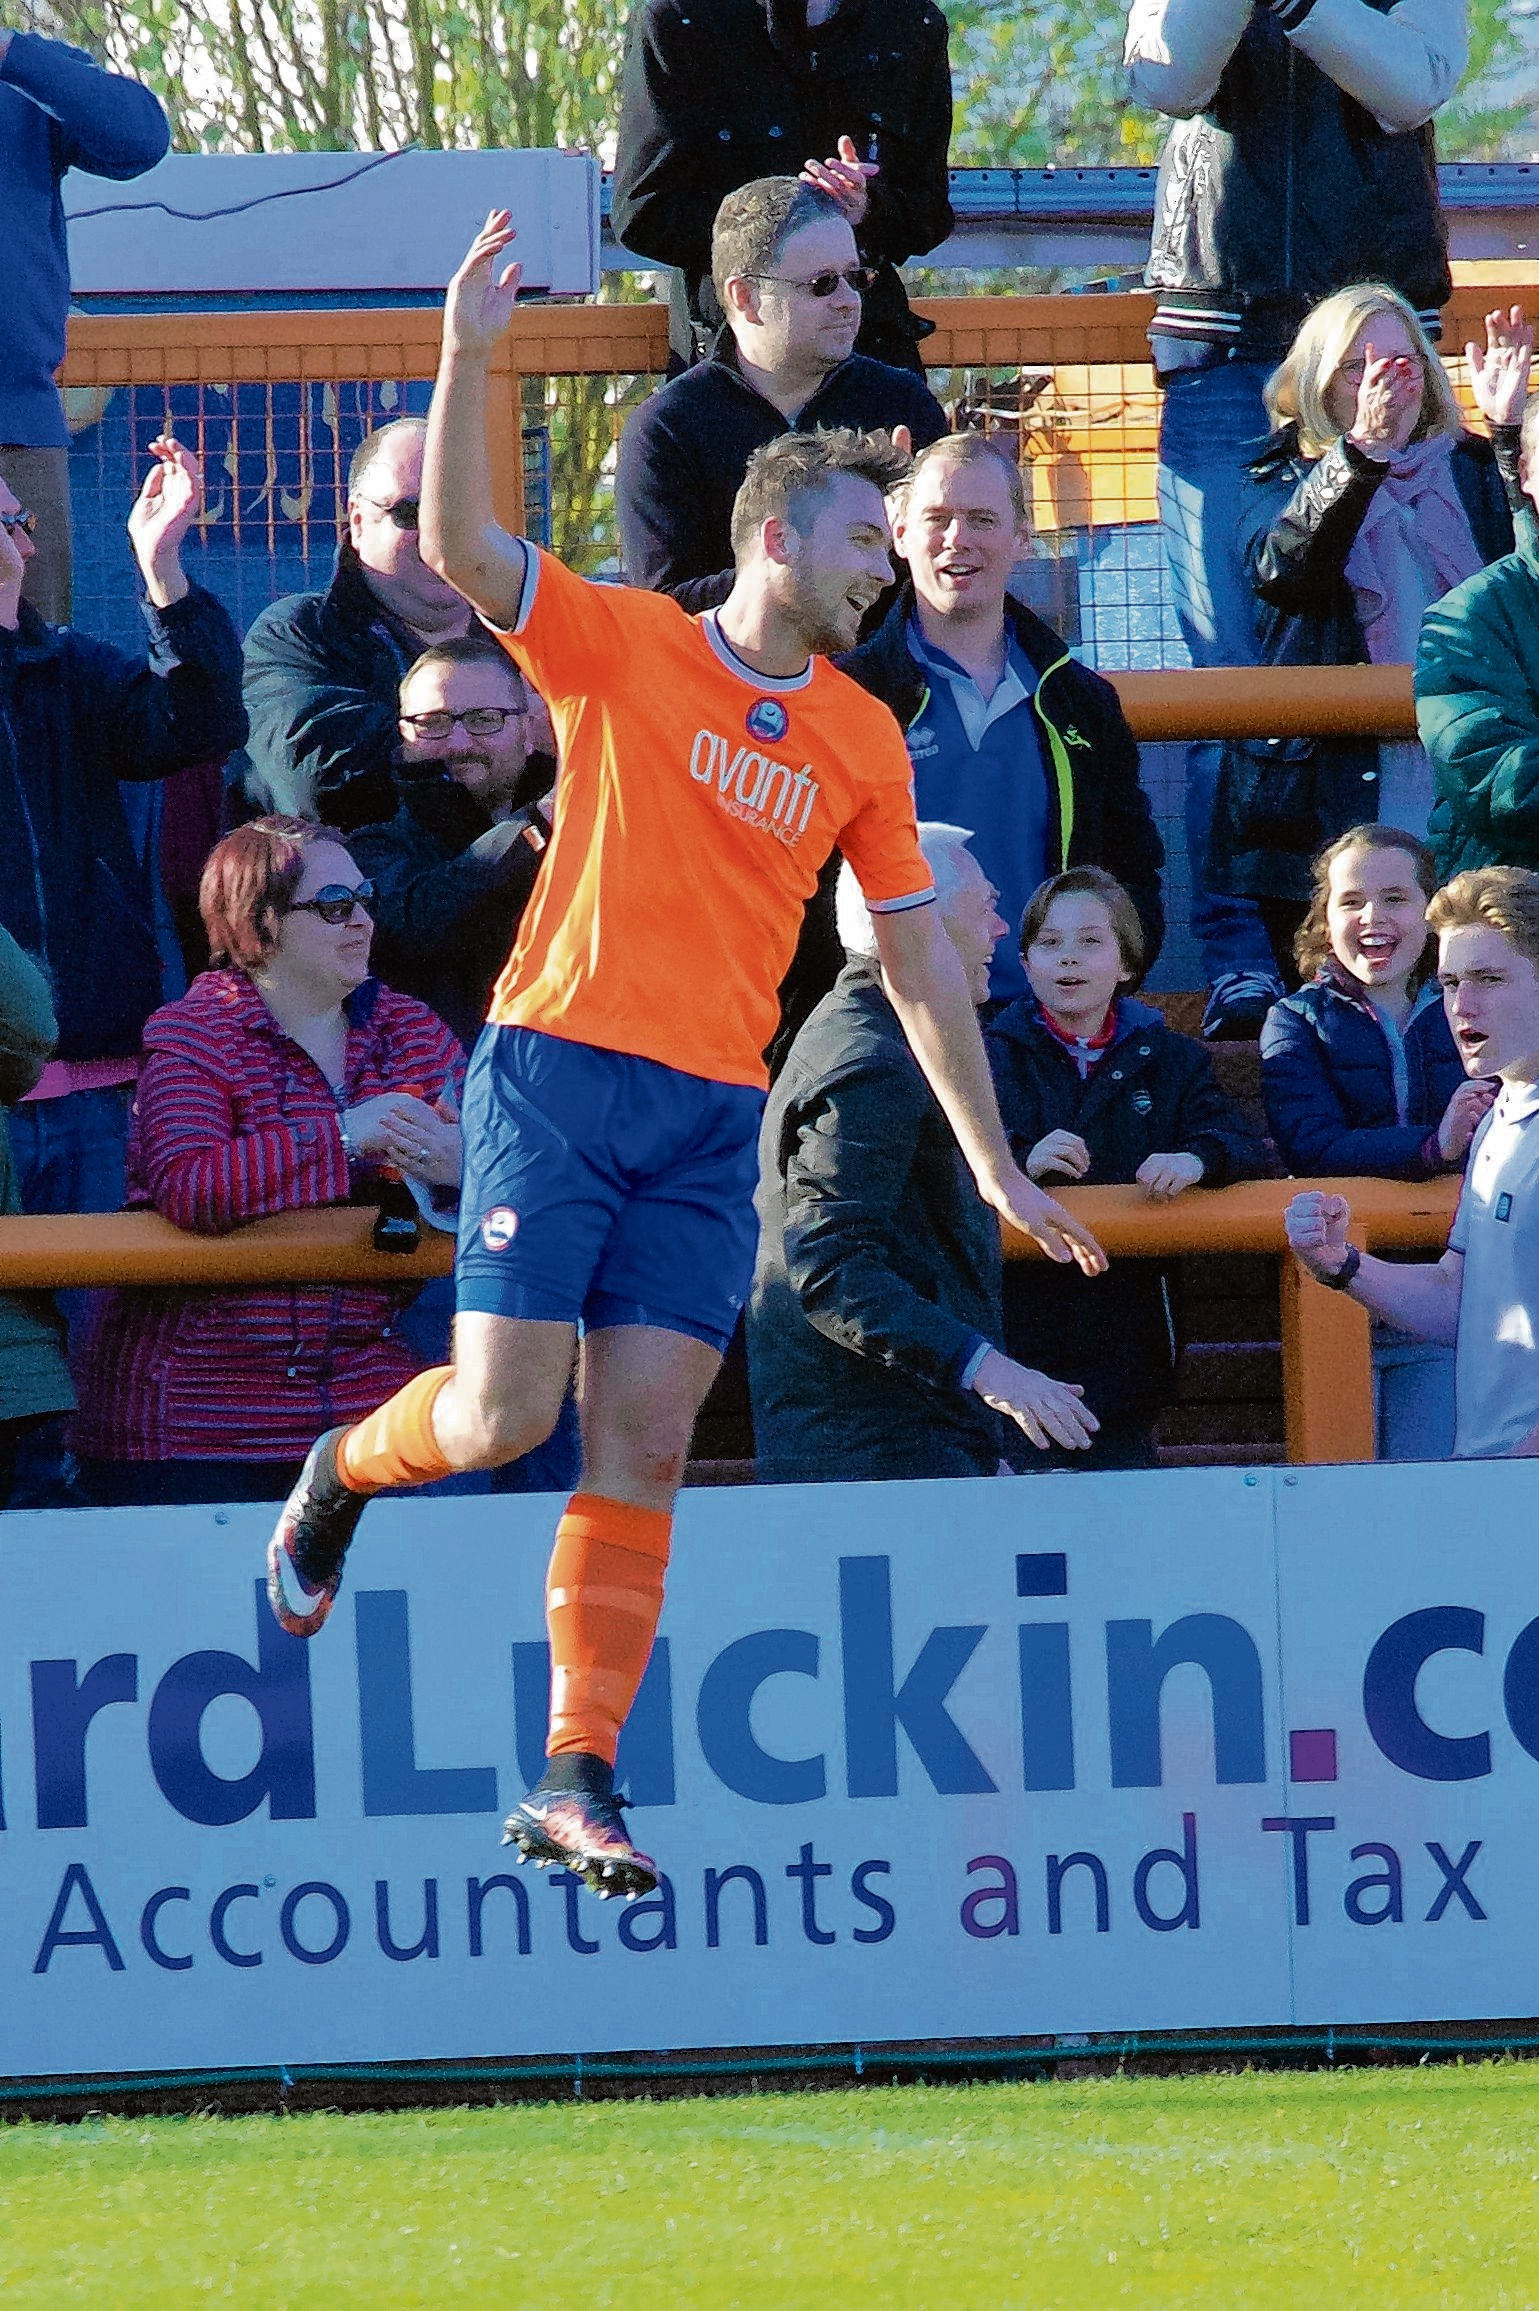 Stunning fightback sees Braintree book their place in FA Cup first round draw